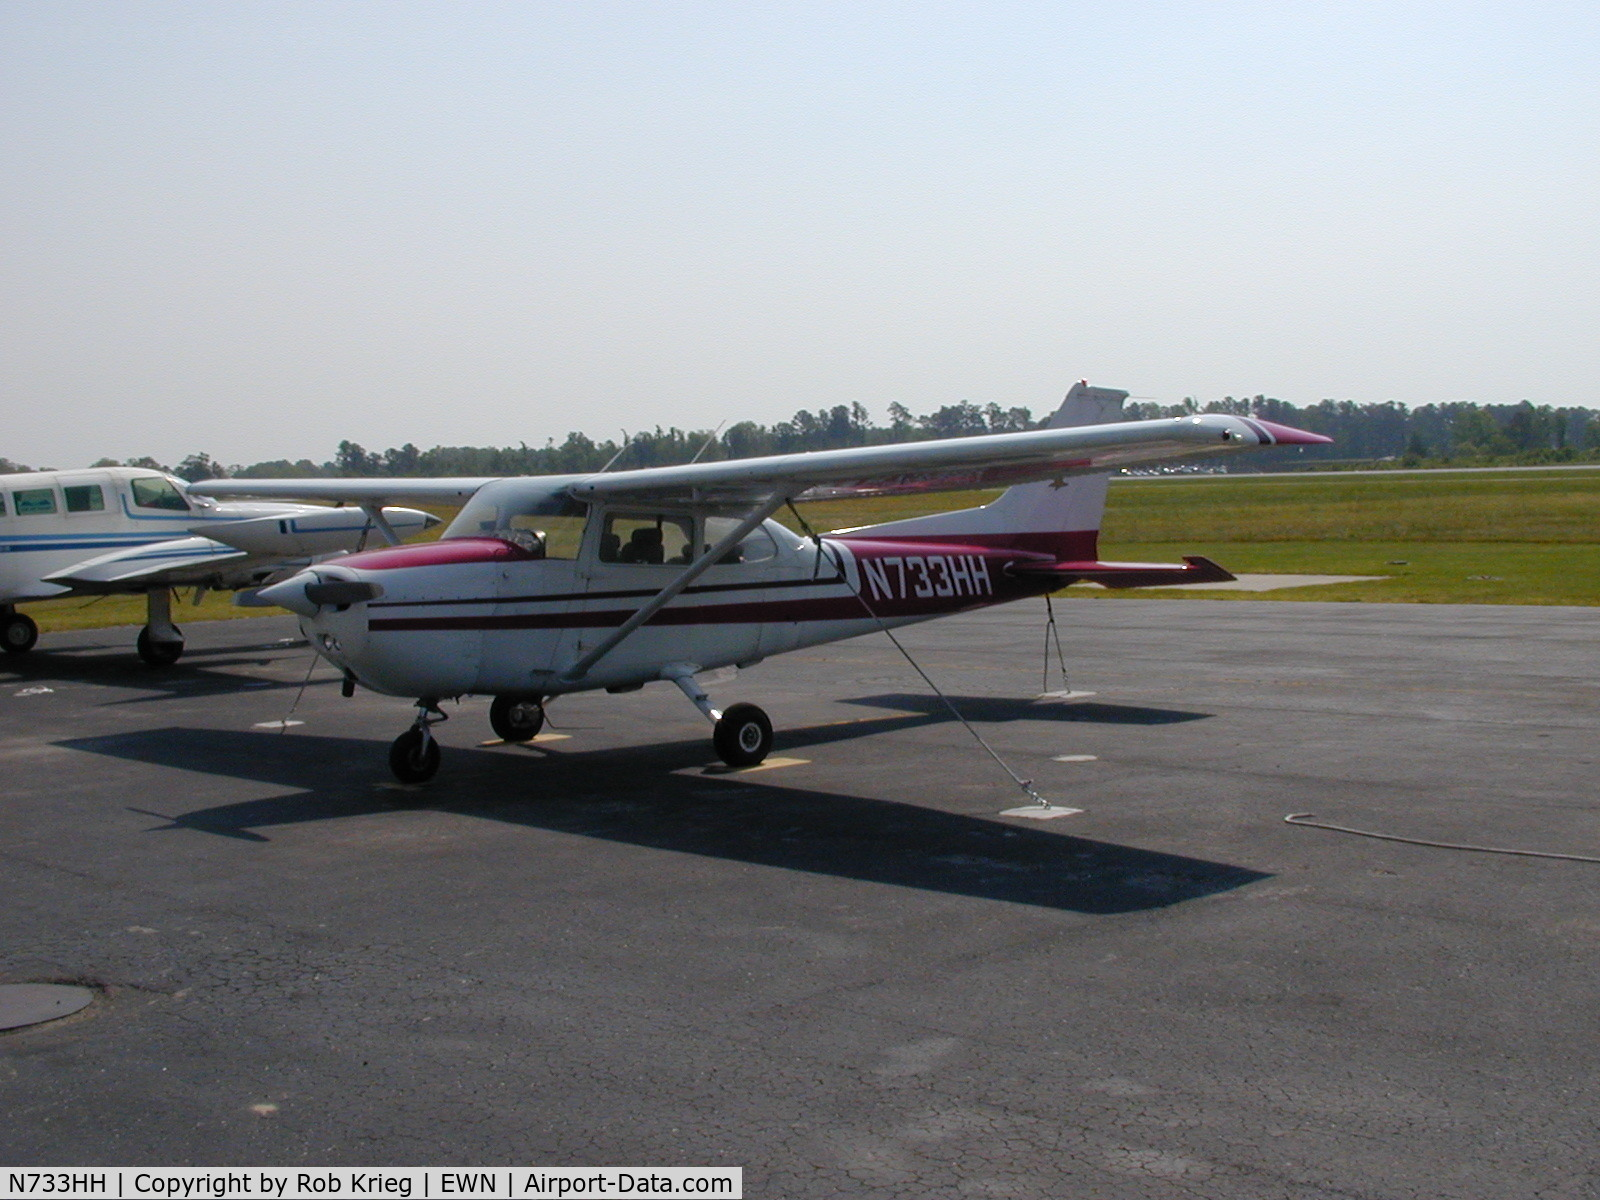 N733HH, 1976 Cessna 172N Skyhawk C/N 17268303, TradeWind Aviation Rental